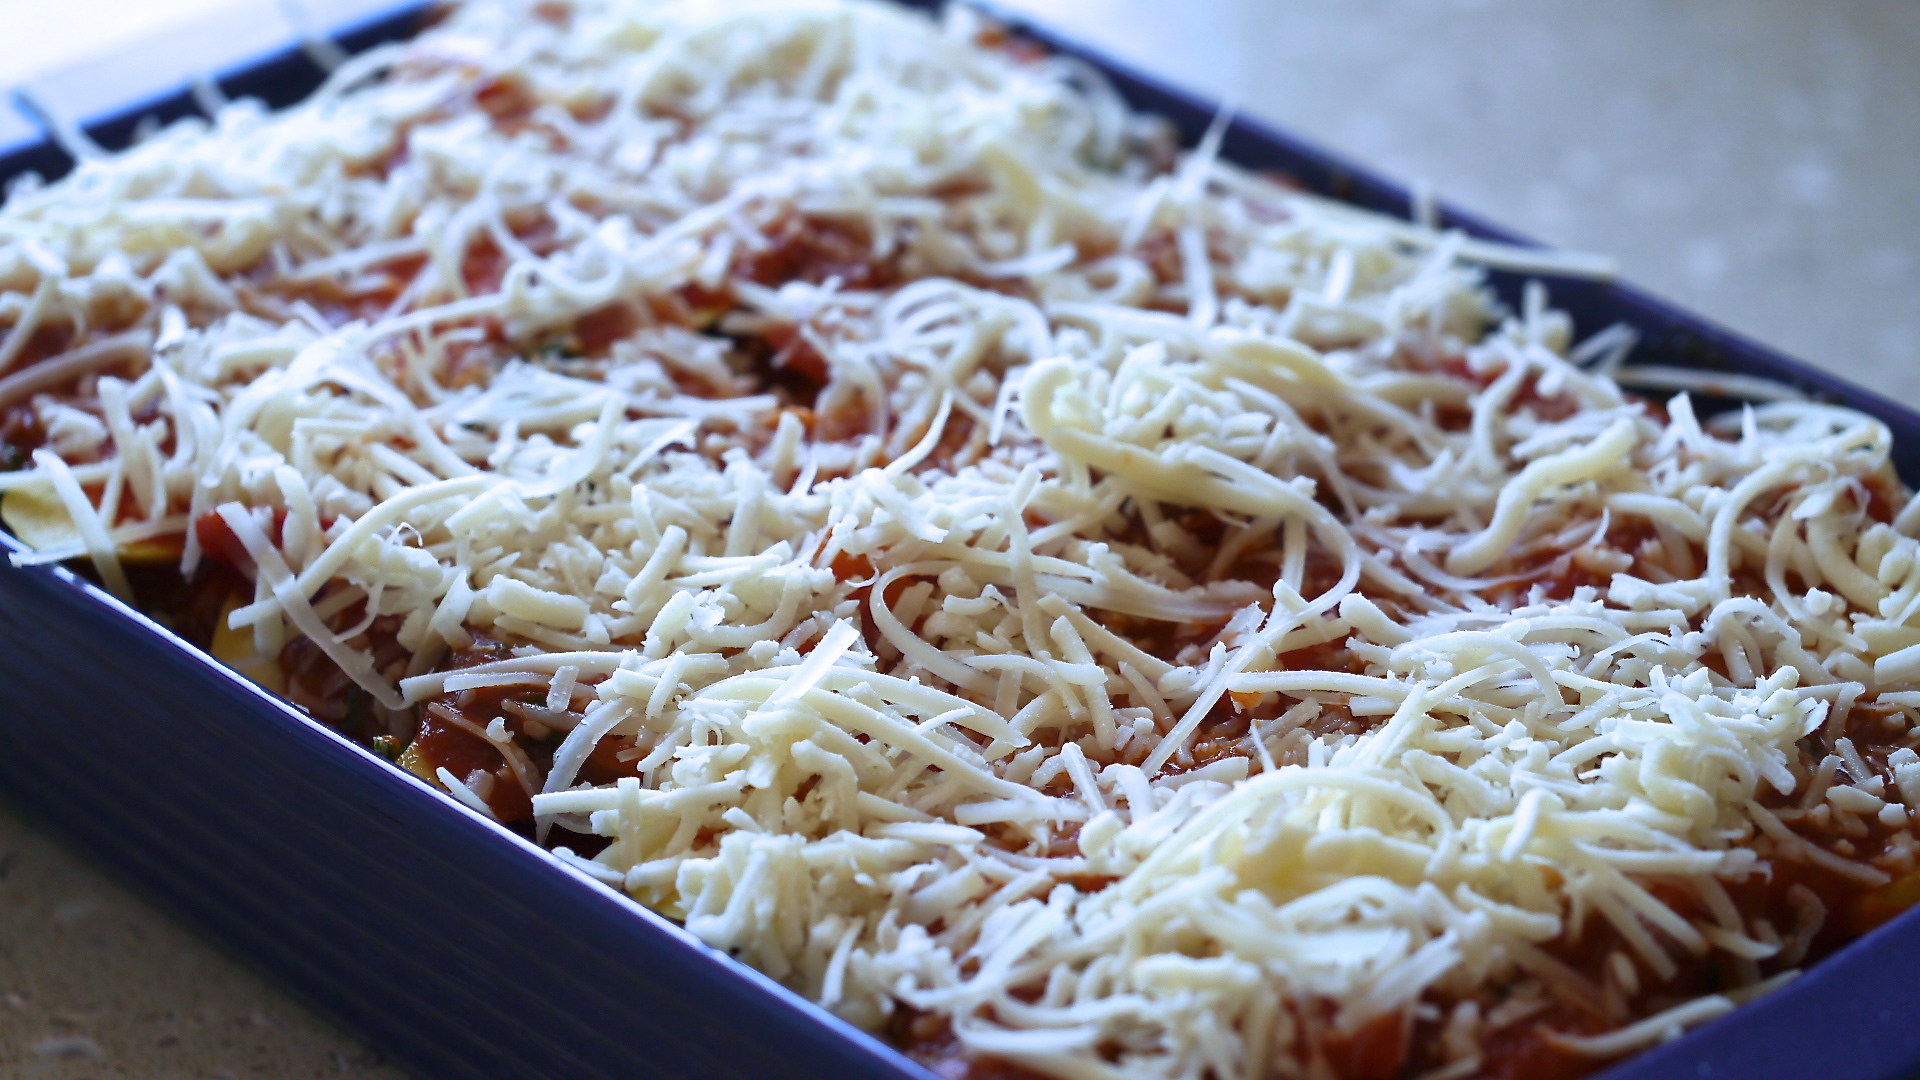 Creamy Vegetable Lasagna Or 12 Sheets No Boil Lasagna Noodles Rated 5 Out Of 5 By Ramya S From Creamy Veg Lasagna A Wonderful Recipe